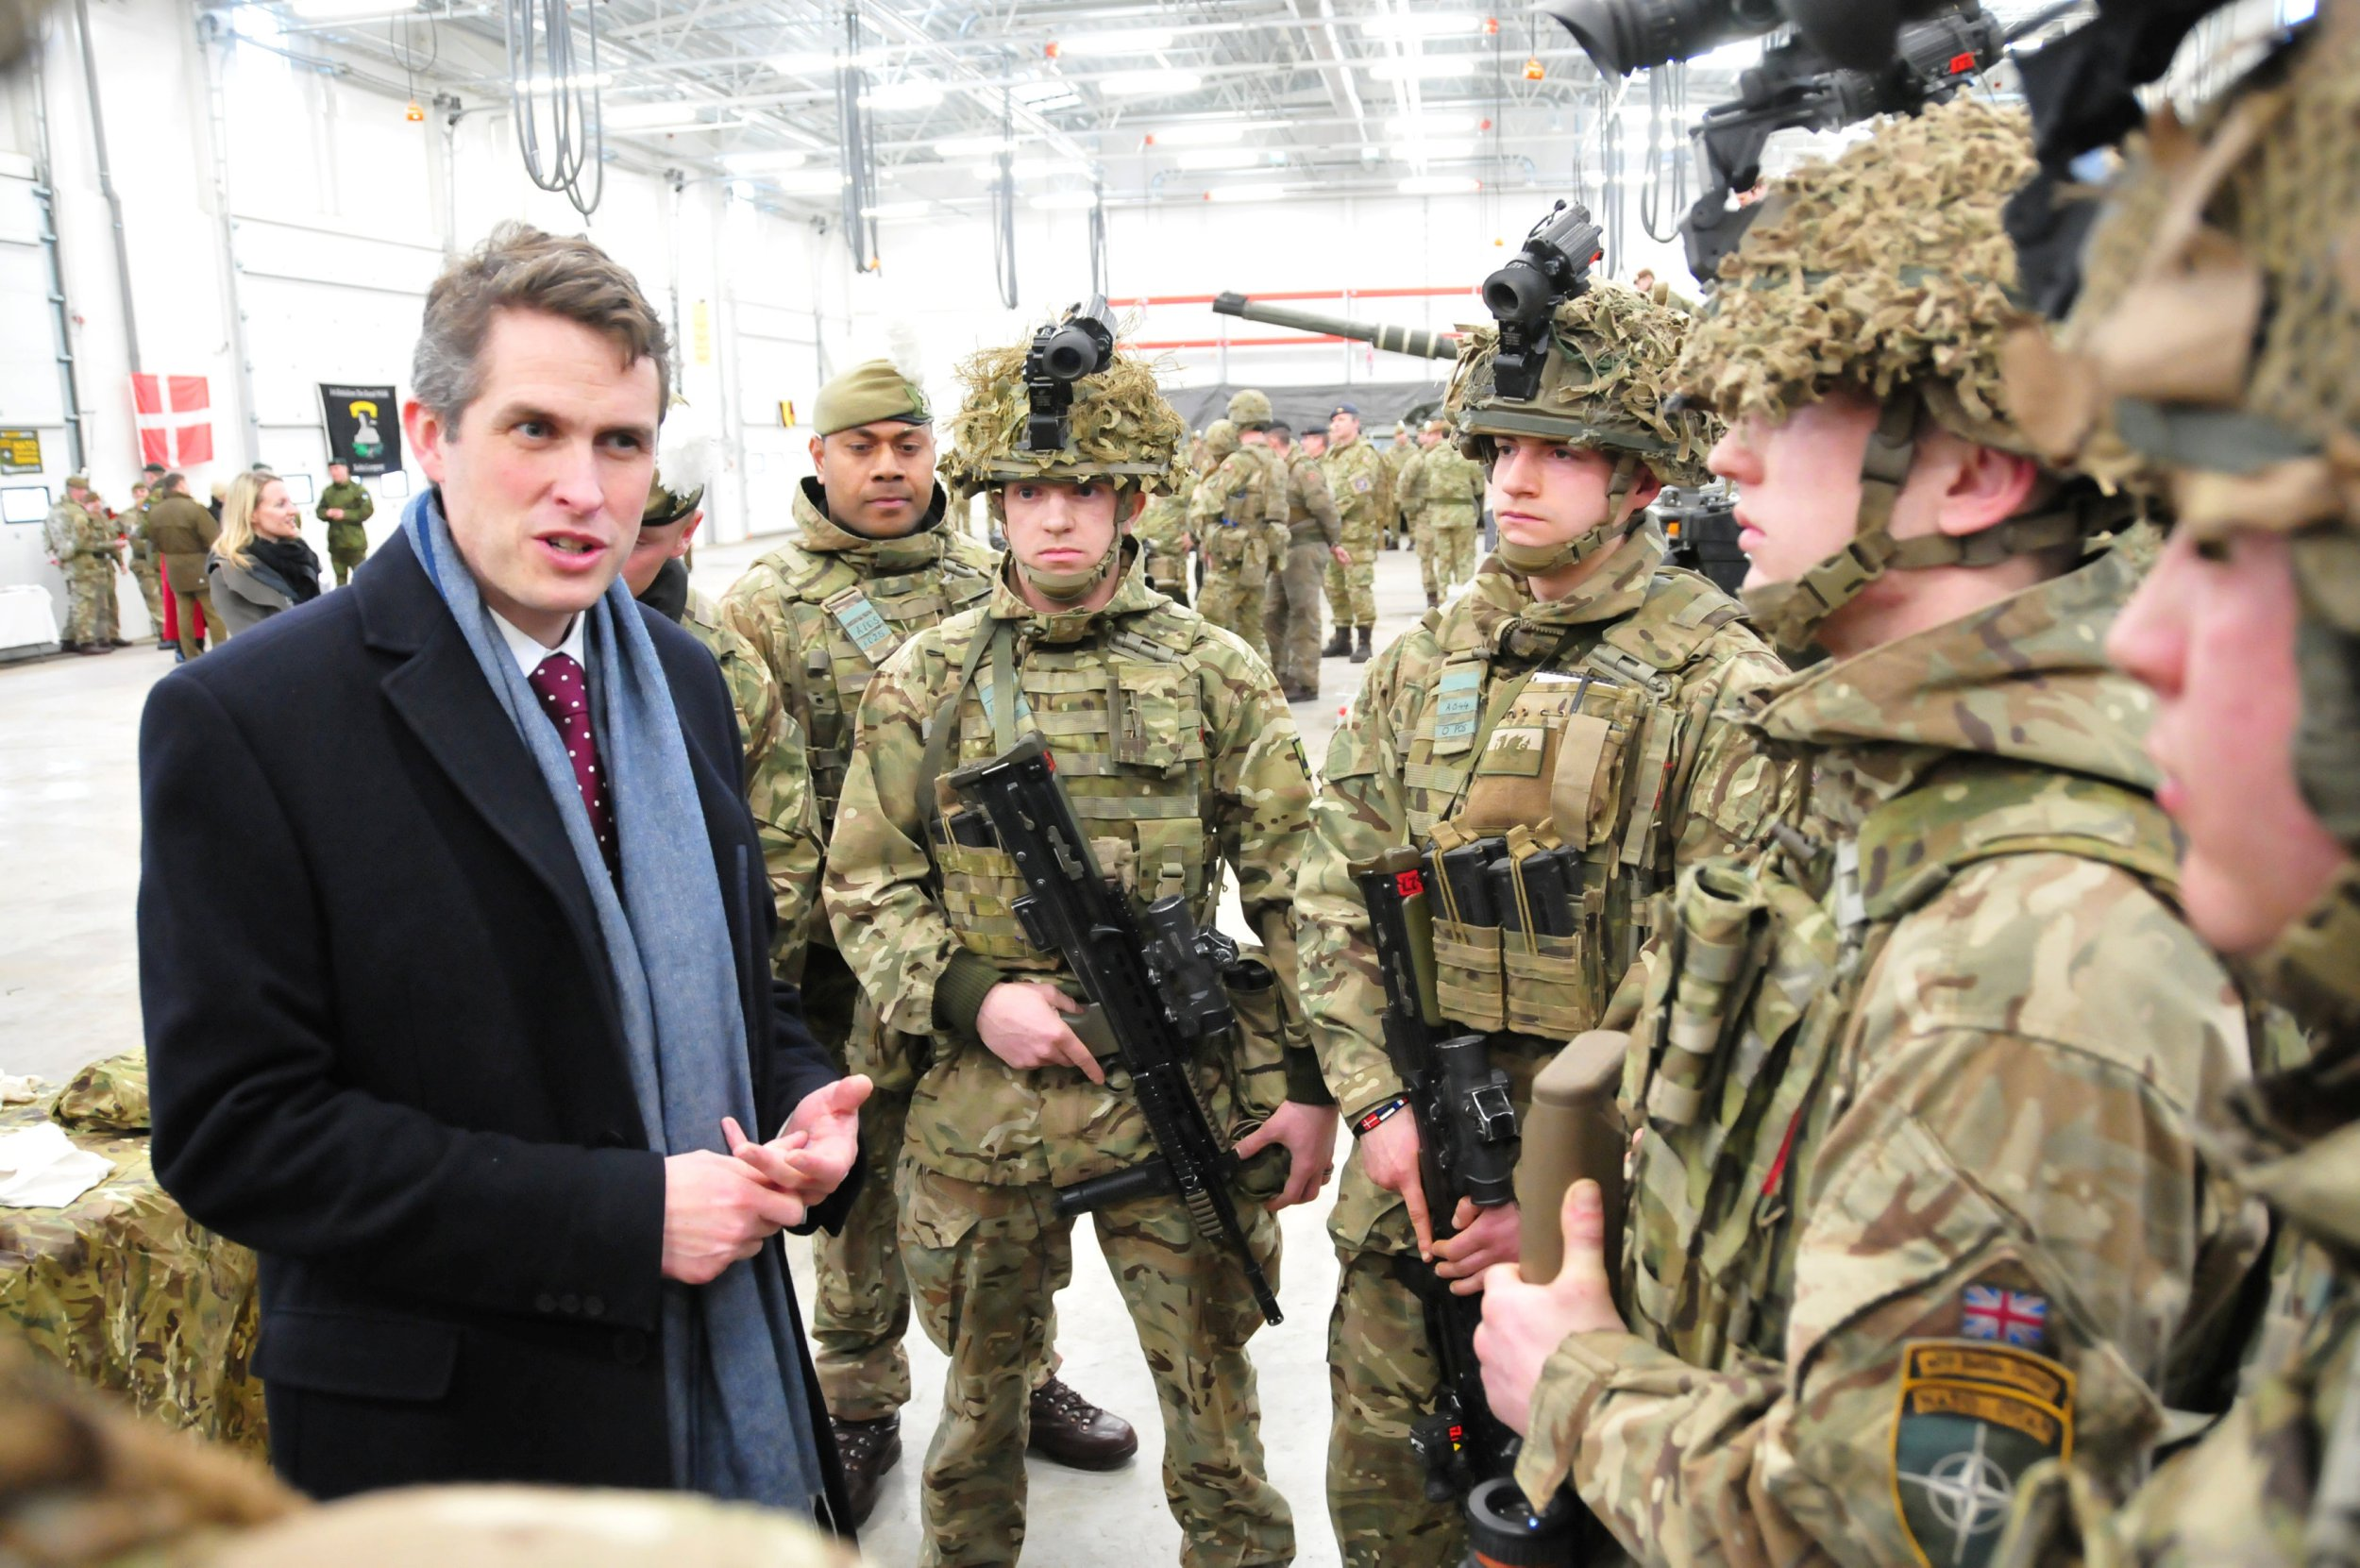 Government backing plans to create 'military schools' to help poor children